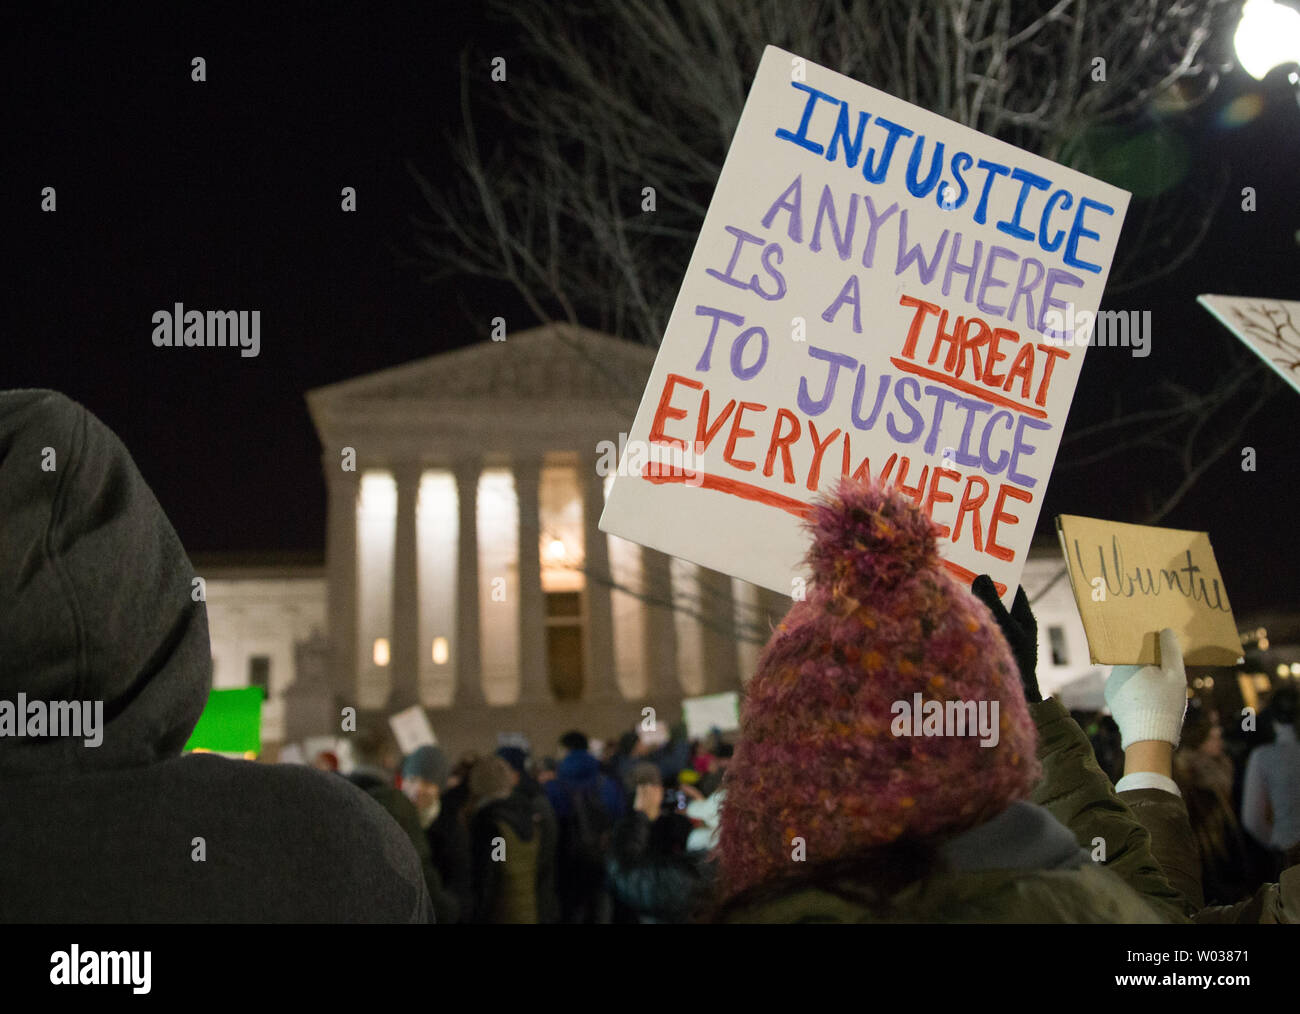 A protester holds up a sign in front of the U.S. Supreme Court to call on U.S. President Trump to reverse his administration's recent anti-refugee and anti-immigrant executive orders that bar for 90 days people traveling from Iraq, Iran, Sudan Syria, Yemen, Libya and Somalia to the United States in Washington DC on January 30, 2017. President Trump's executive orders additionally suspend processed refugee admissions for Syrians for 120 days and any new refugee applications and admissions for Syrian refugees to be banned indefinitely. Photo by Erin Schaff/UPI - Stock Image